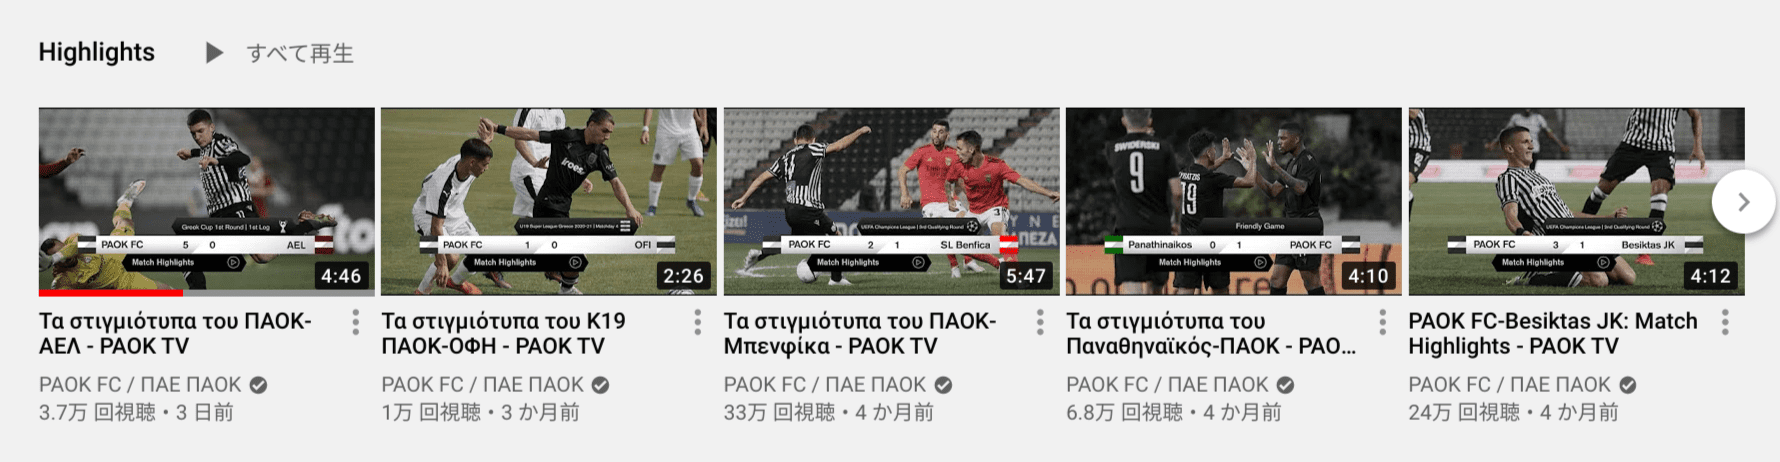 PAOK_FC-YouTubeハイライト